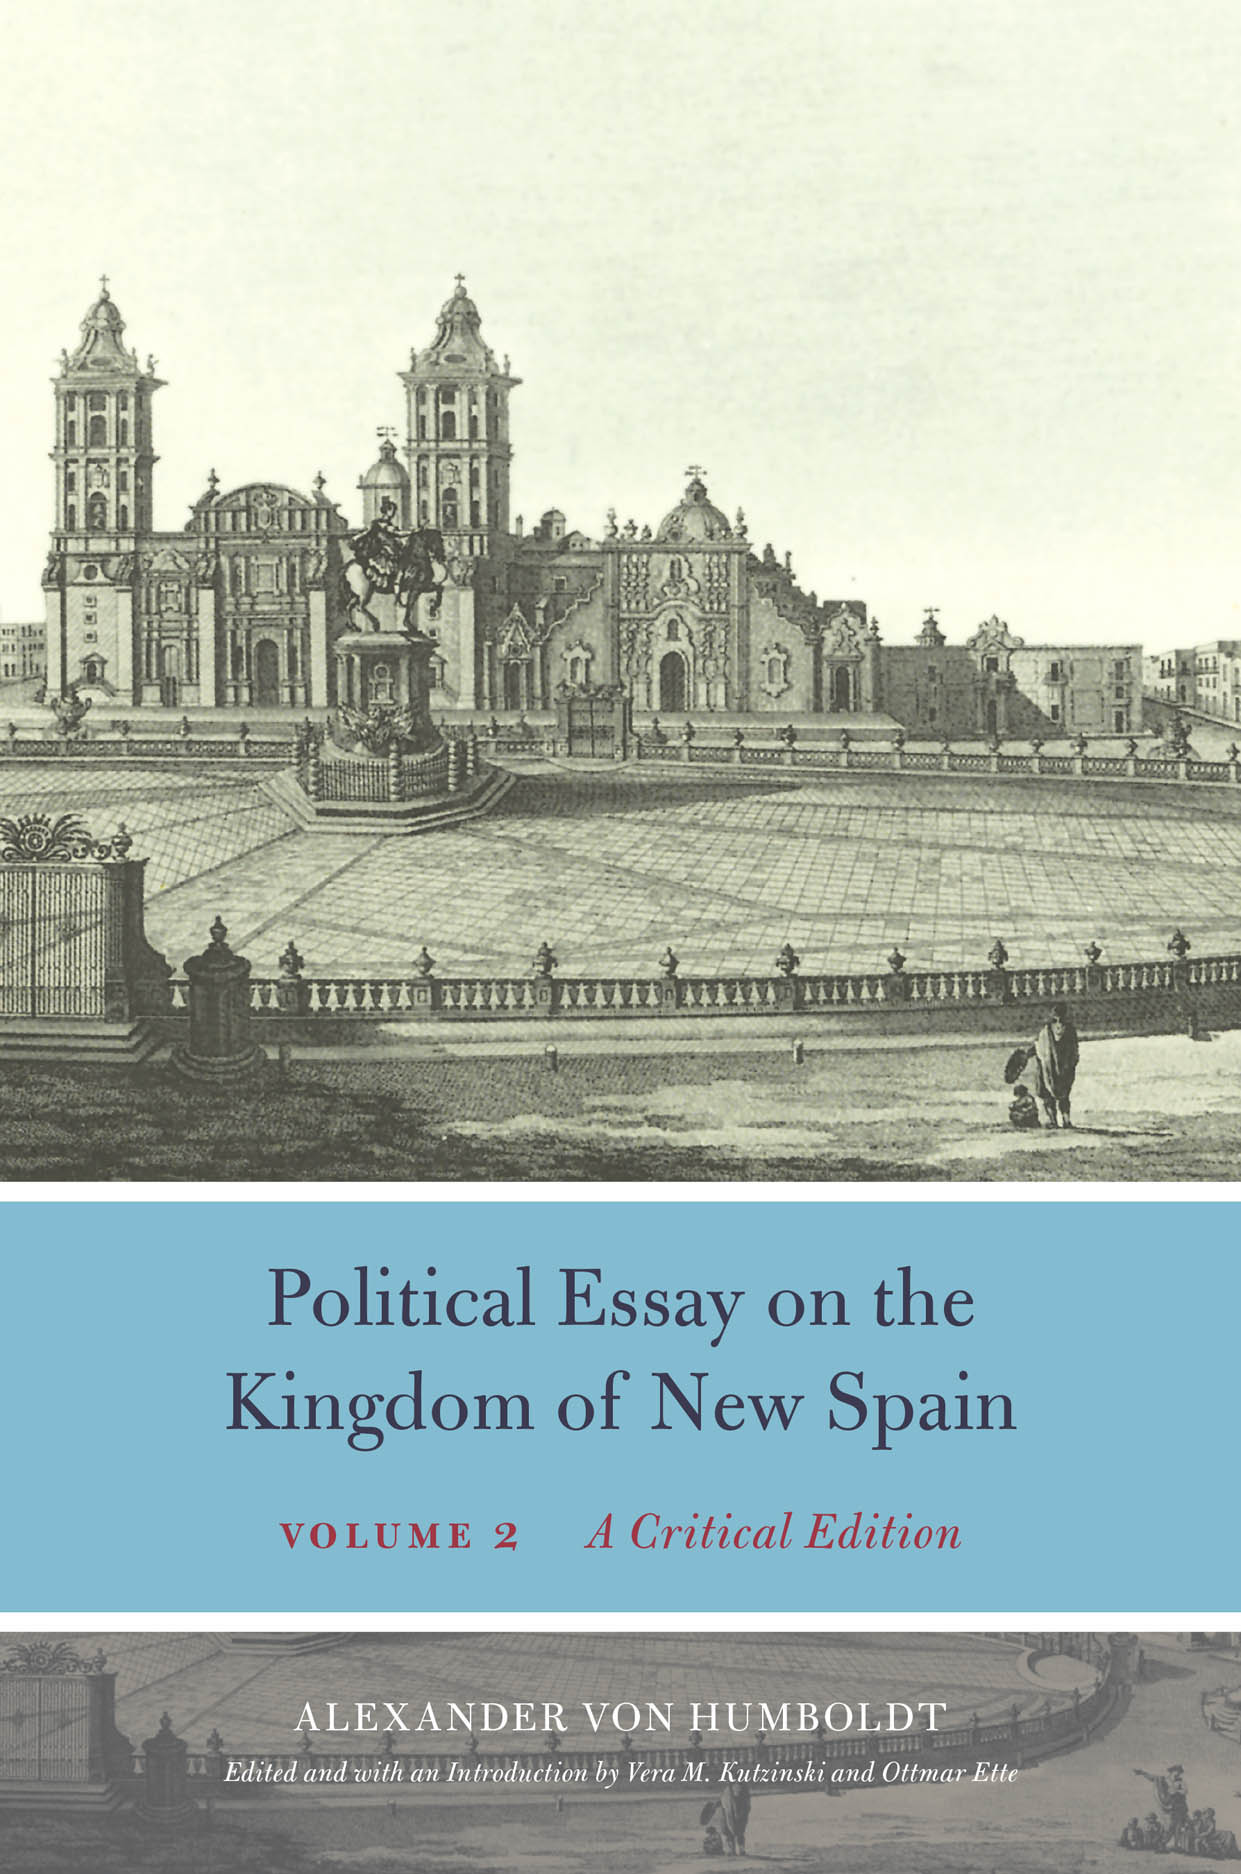 Political Essay on the Kingdom of New Spain, Volume 2: A Critical Edition